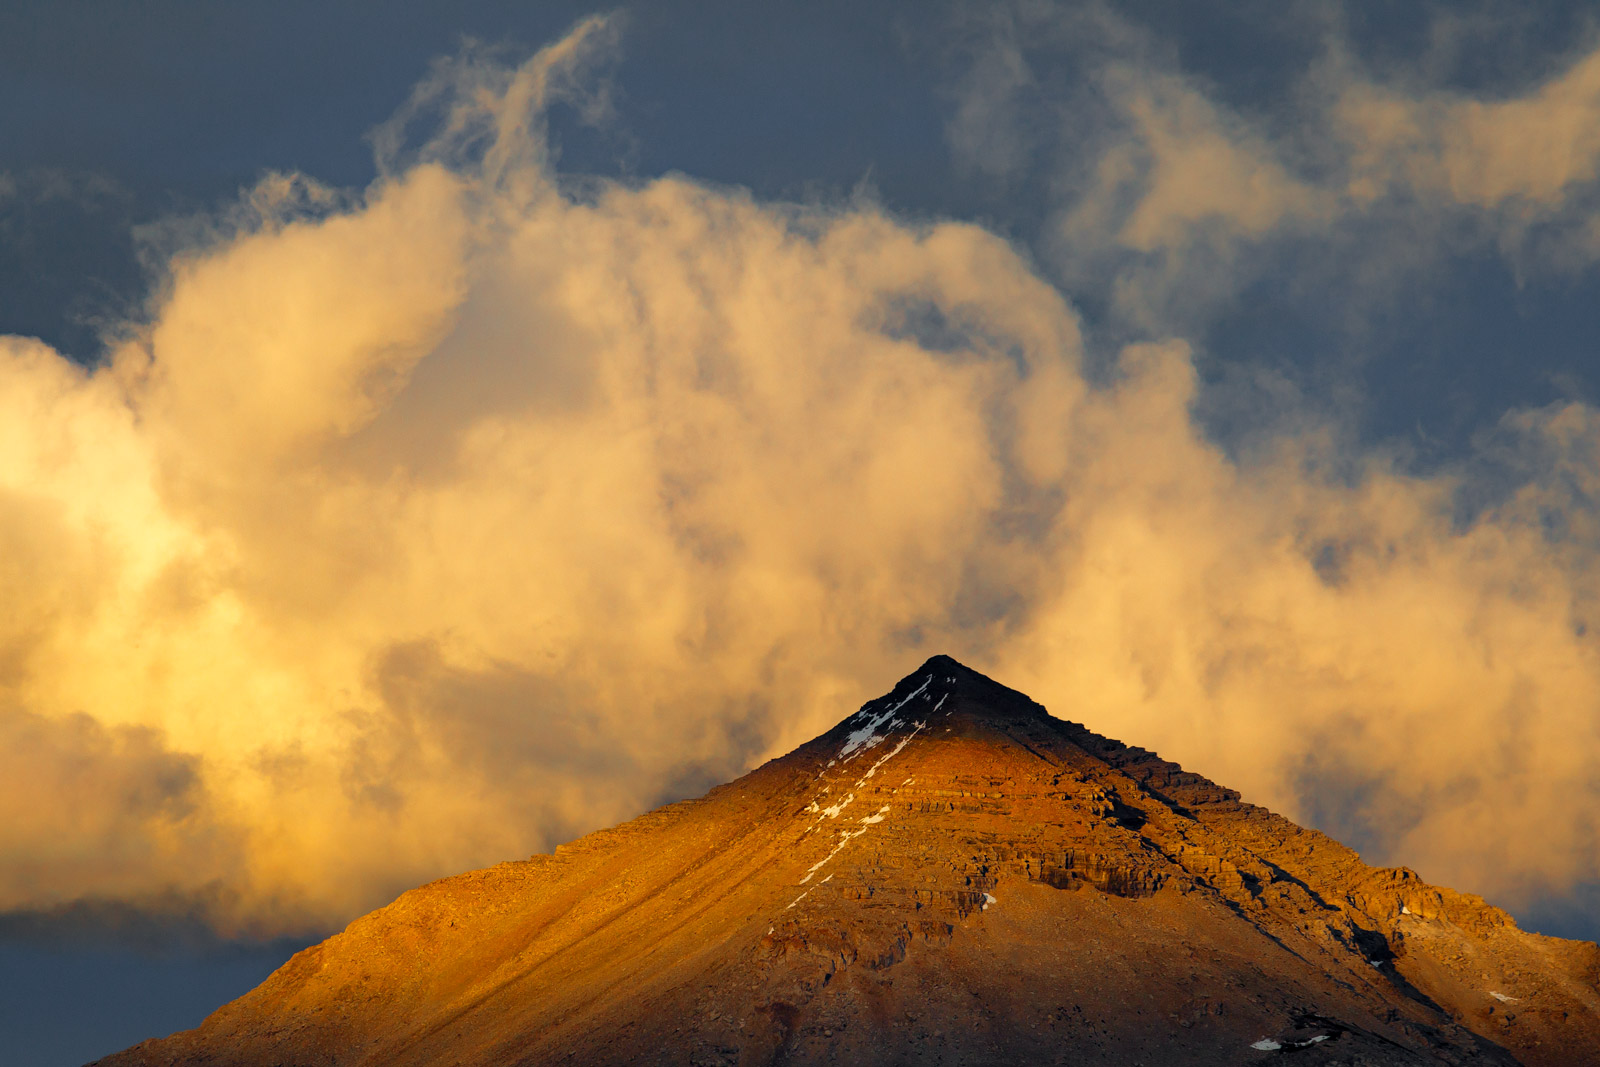 A Limited Edition, Fine Art Photograph of dramatic clouds bursting at sunset over Divide Mountain in Glacier National Park in...